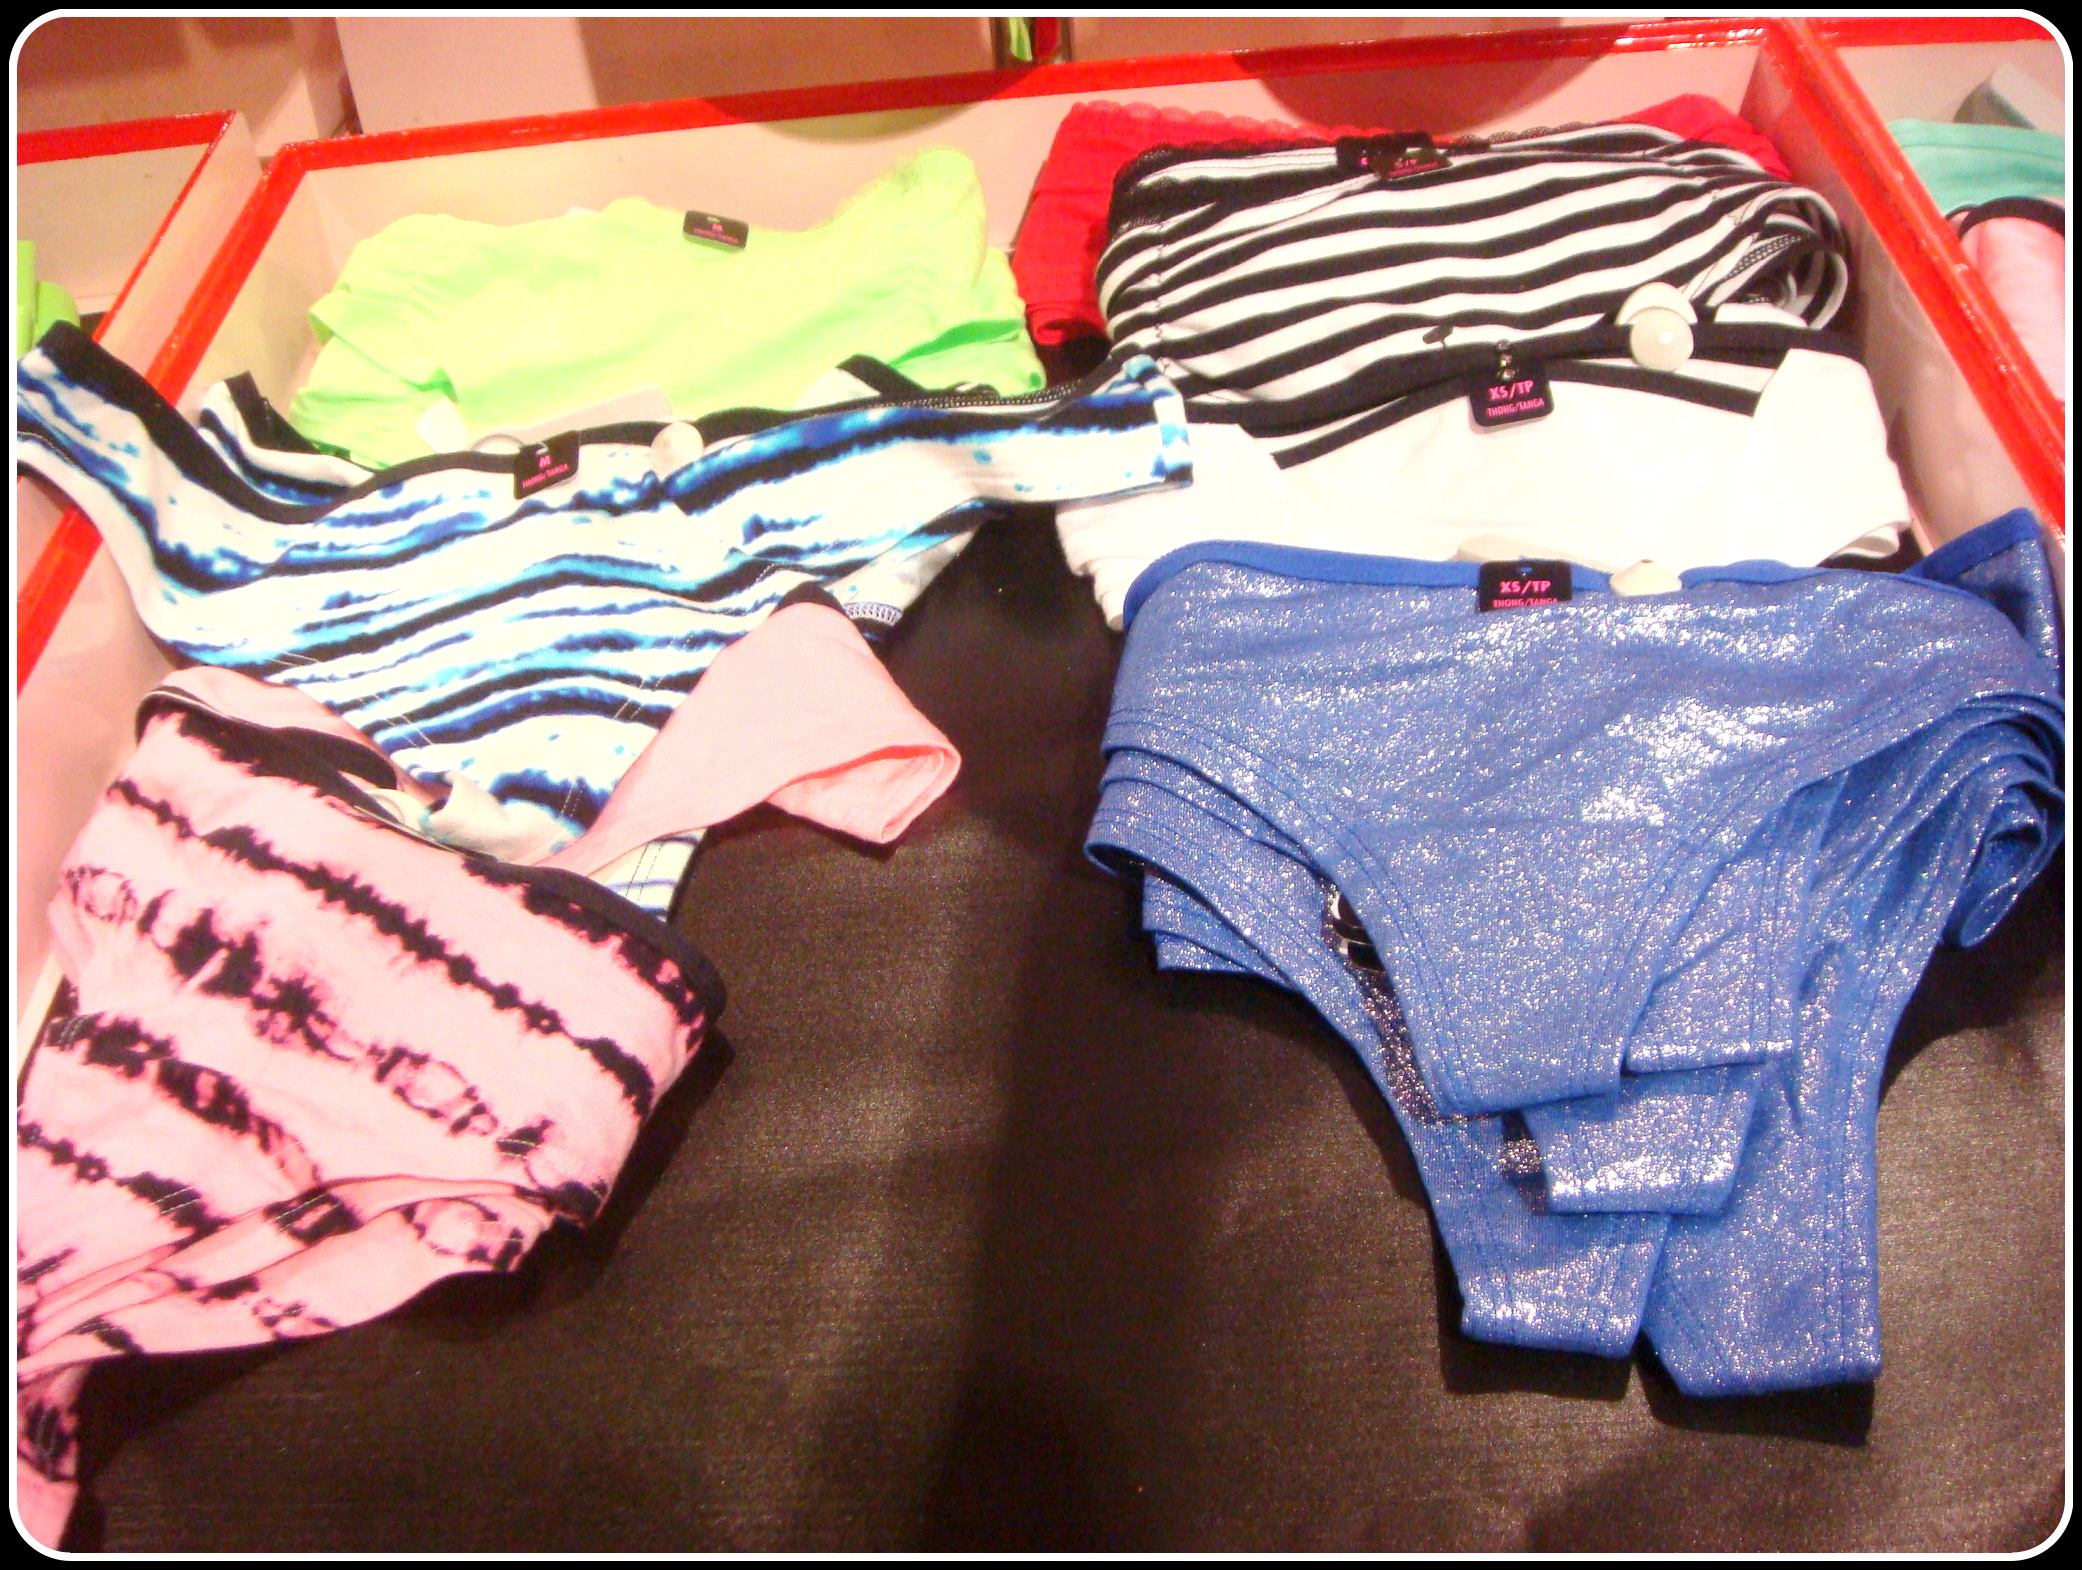 La Senza party underwear